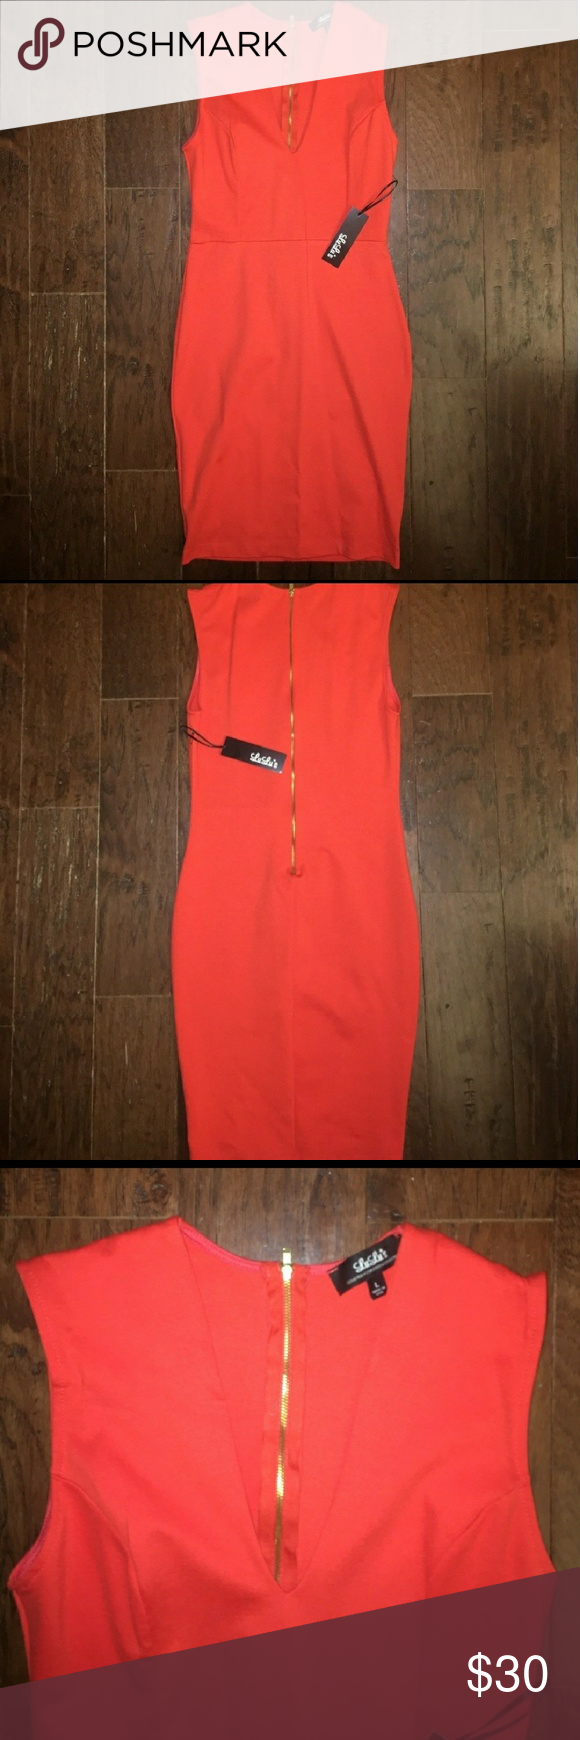 Lulu\'s Coral Cocktail Dress   Coral cocktail dress, Coral color and ...